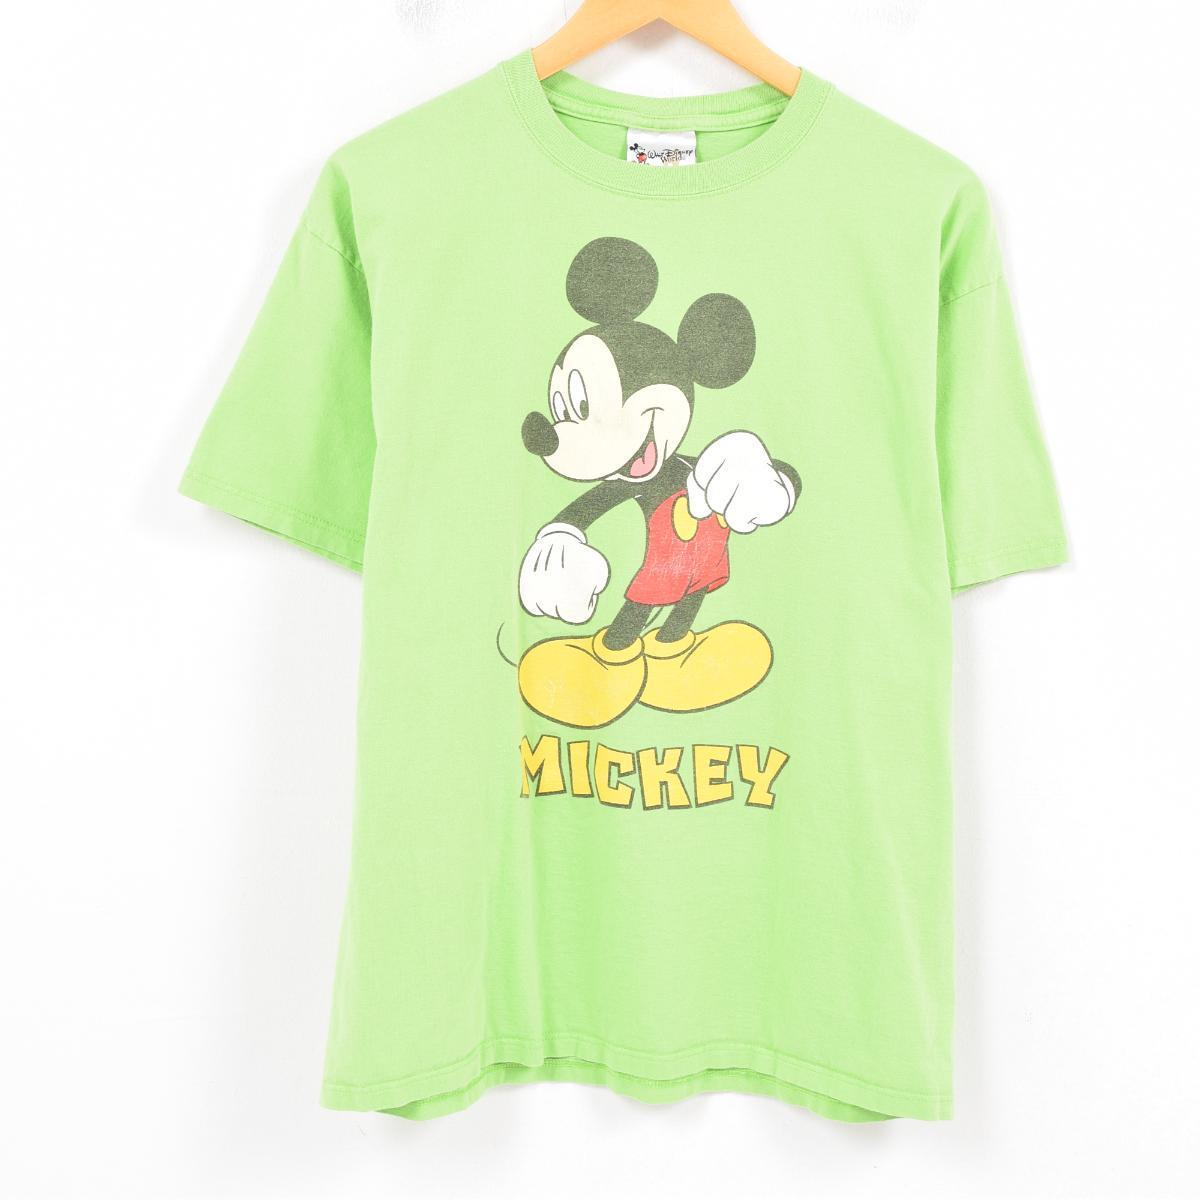 f5701ea8bcf Lady's XL /war8762 made in WALT DISNEY WORLD MICKEY MOUSE Mickey Mouse  Disney character print ...